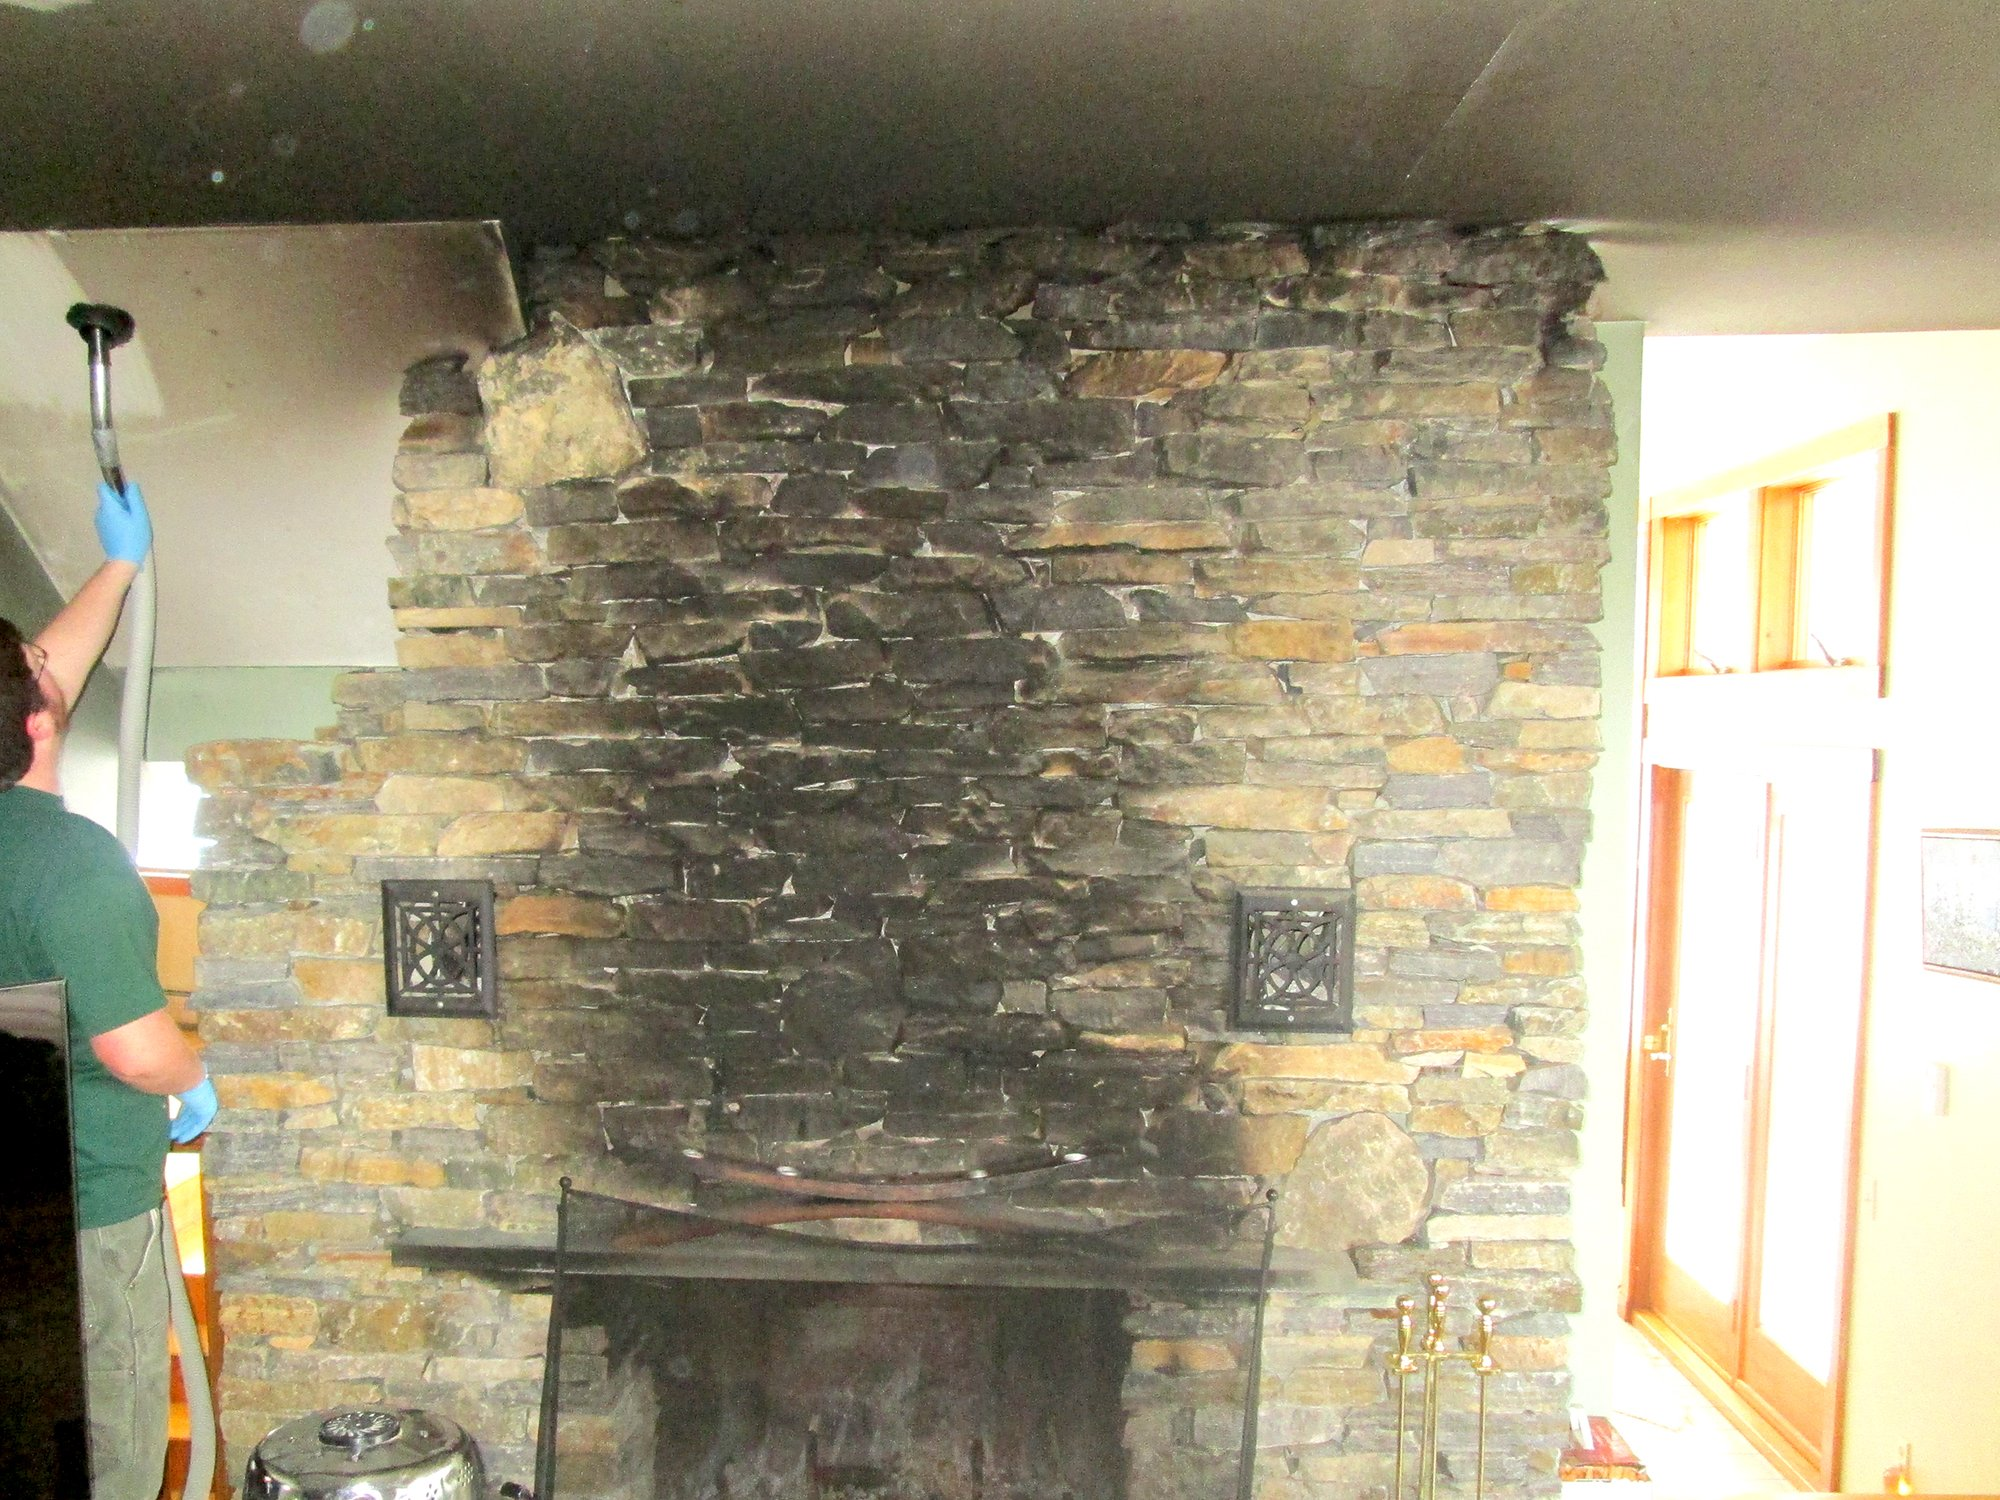 Fire Damage Restoration Services in VT & Northern NH